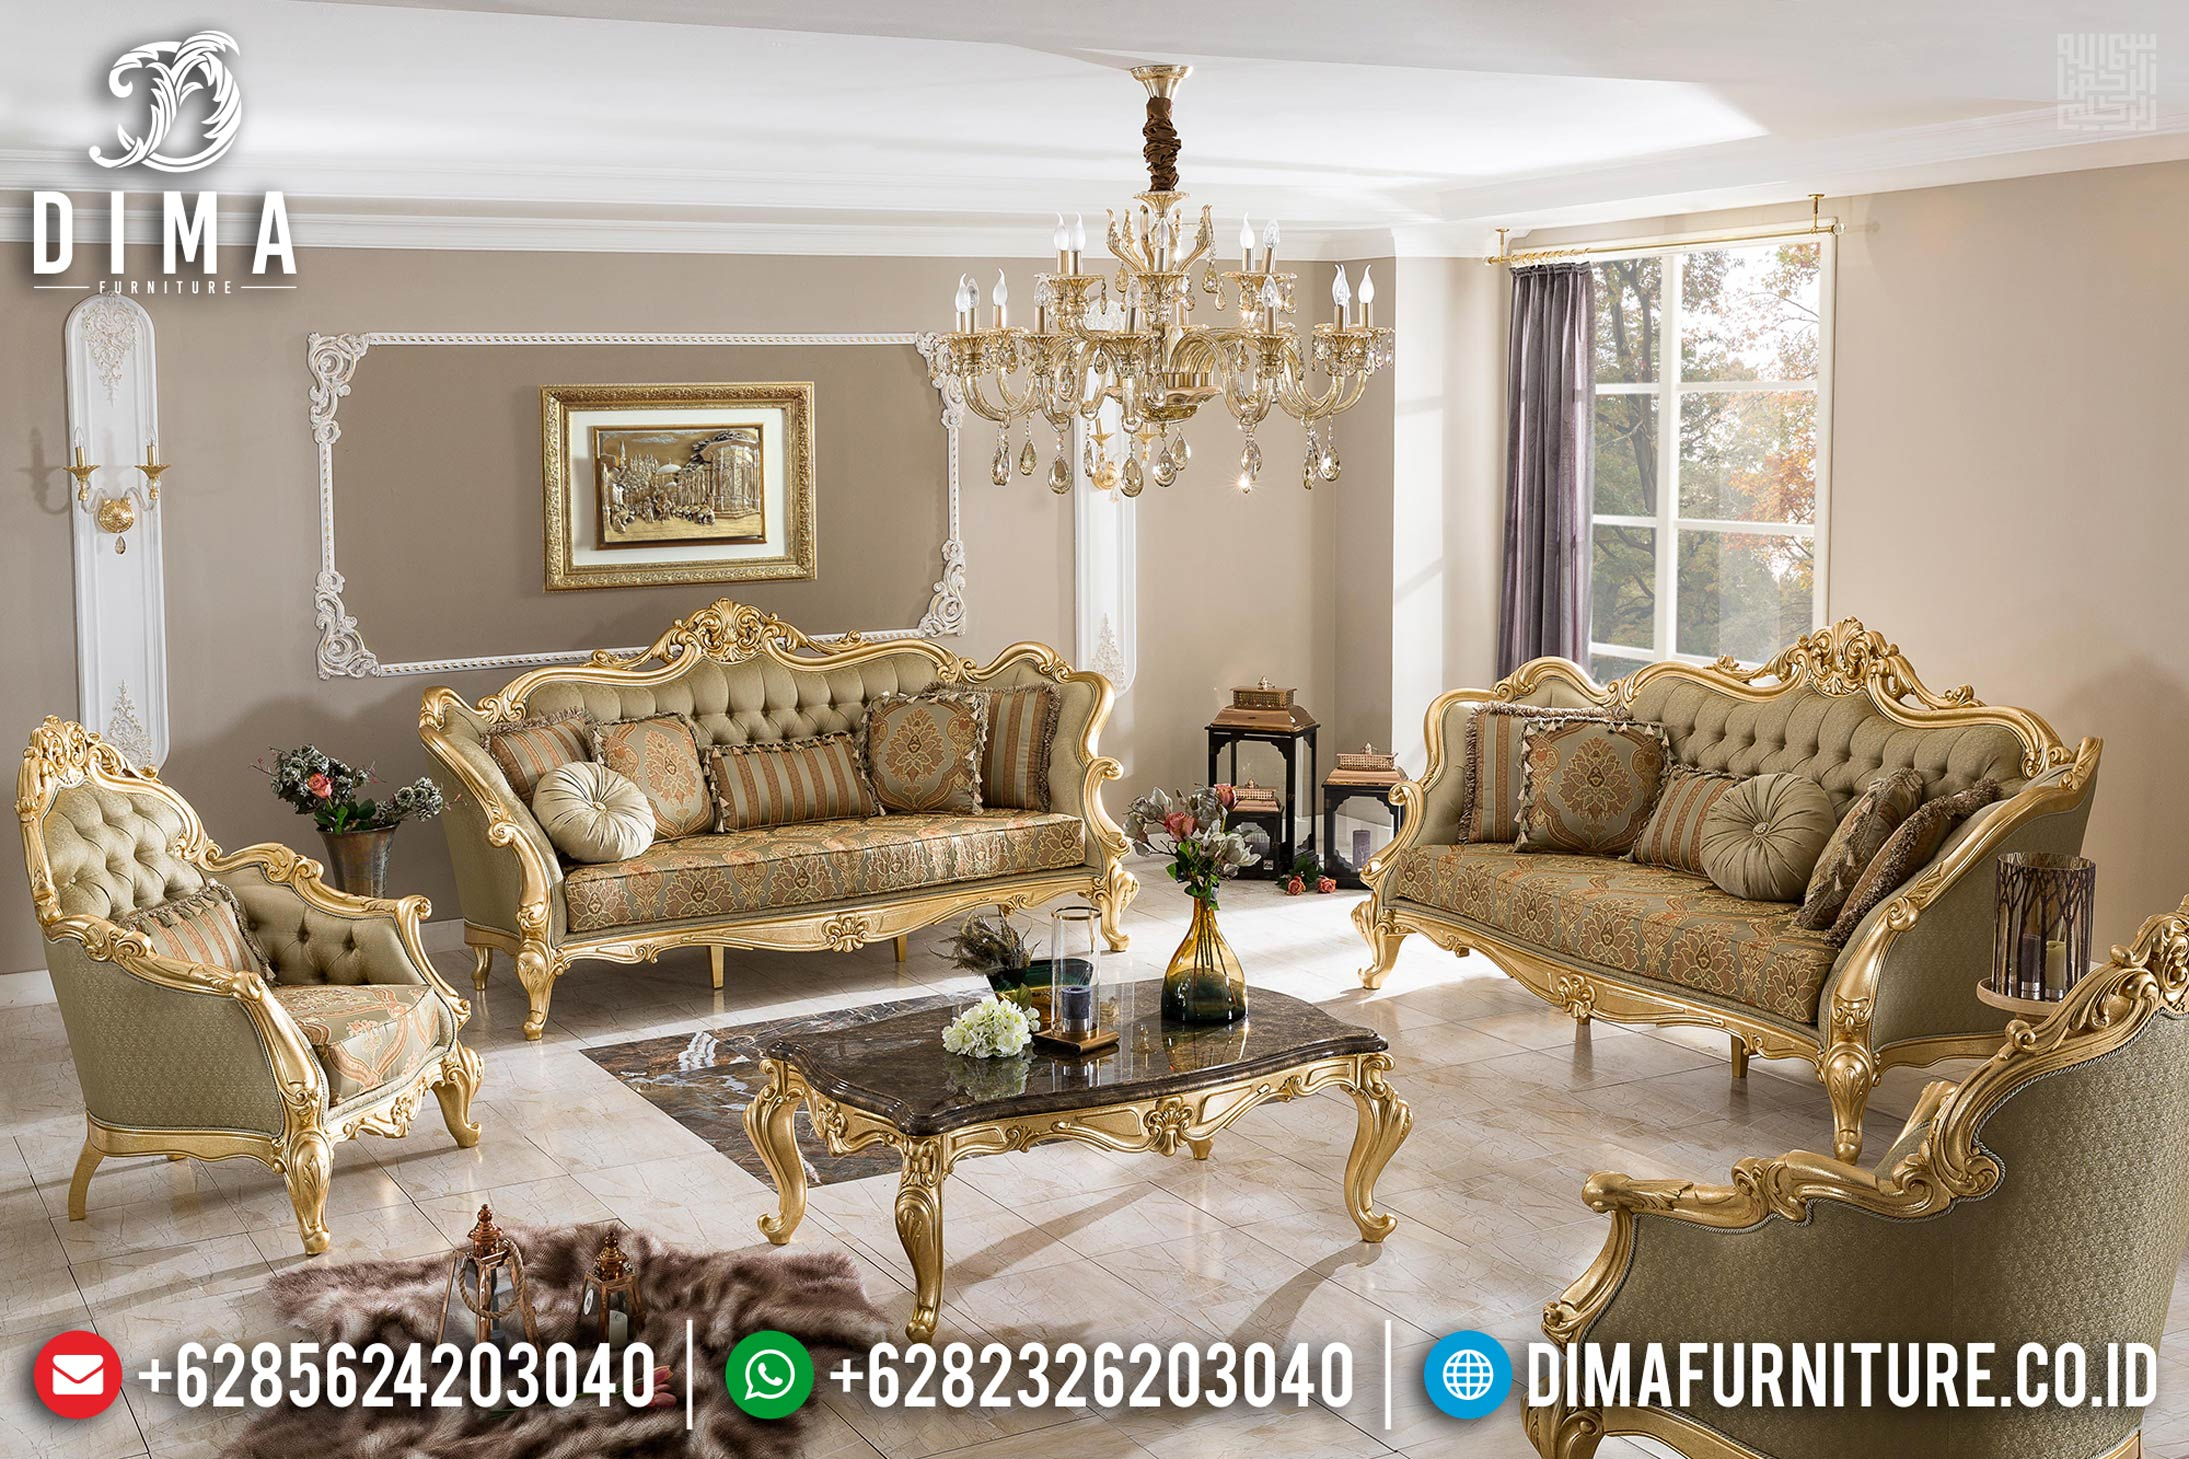 Model Sofa Tamu Mewah Furniture Jepara Golden Luxury New 2020 BT-0370